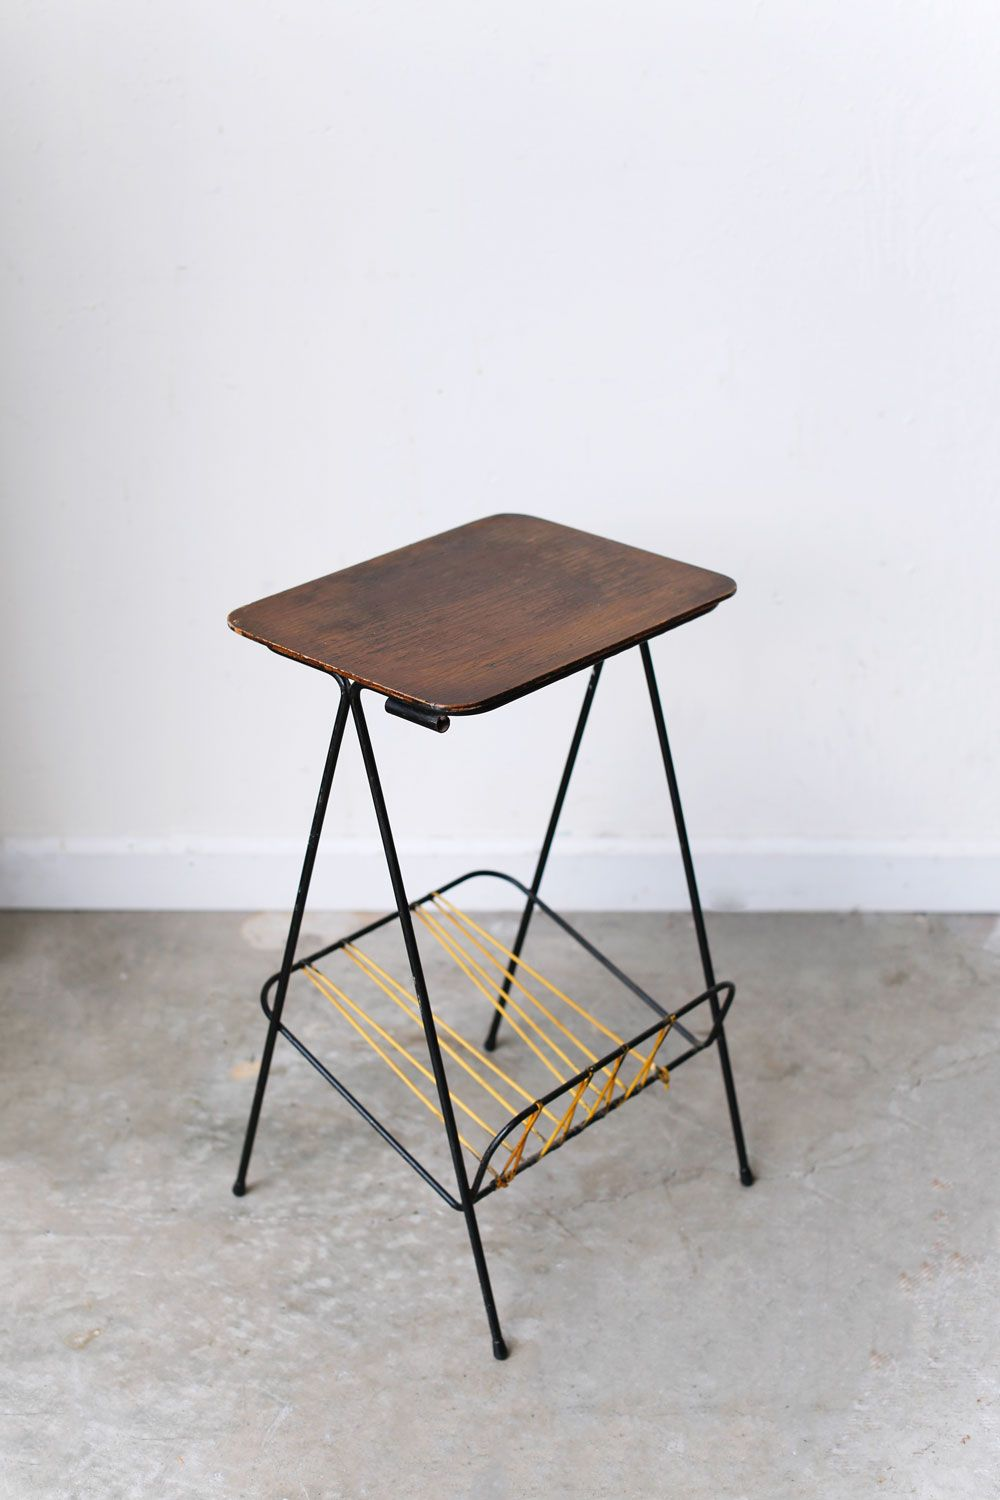 mid century accent table home furniture rugs inspiration modern found this pretty side with lower shelf depot outside lyon love its simple lines made wood heavy duty drum throne